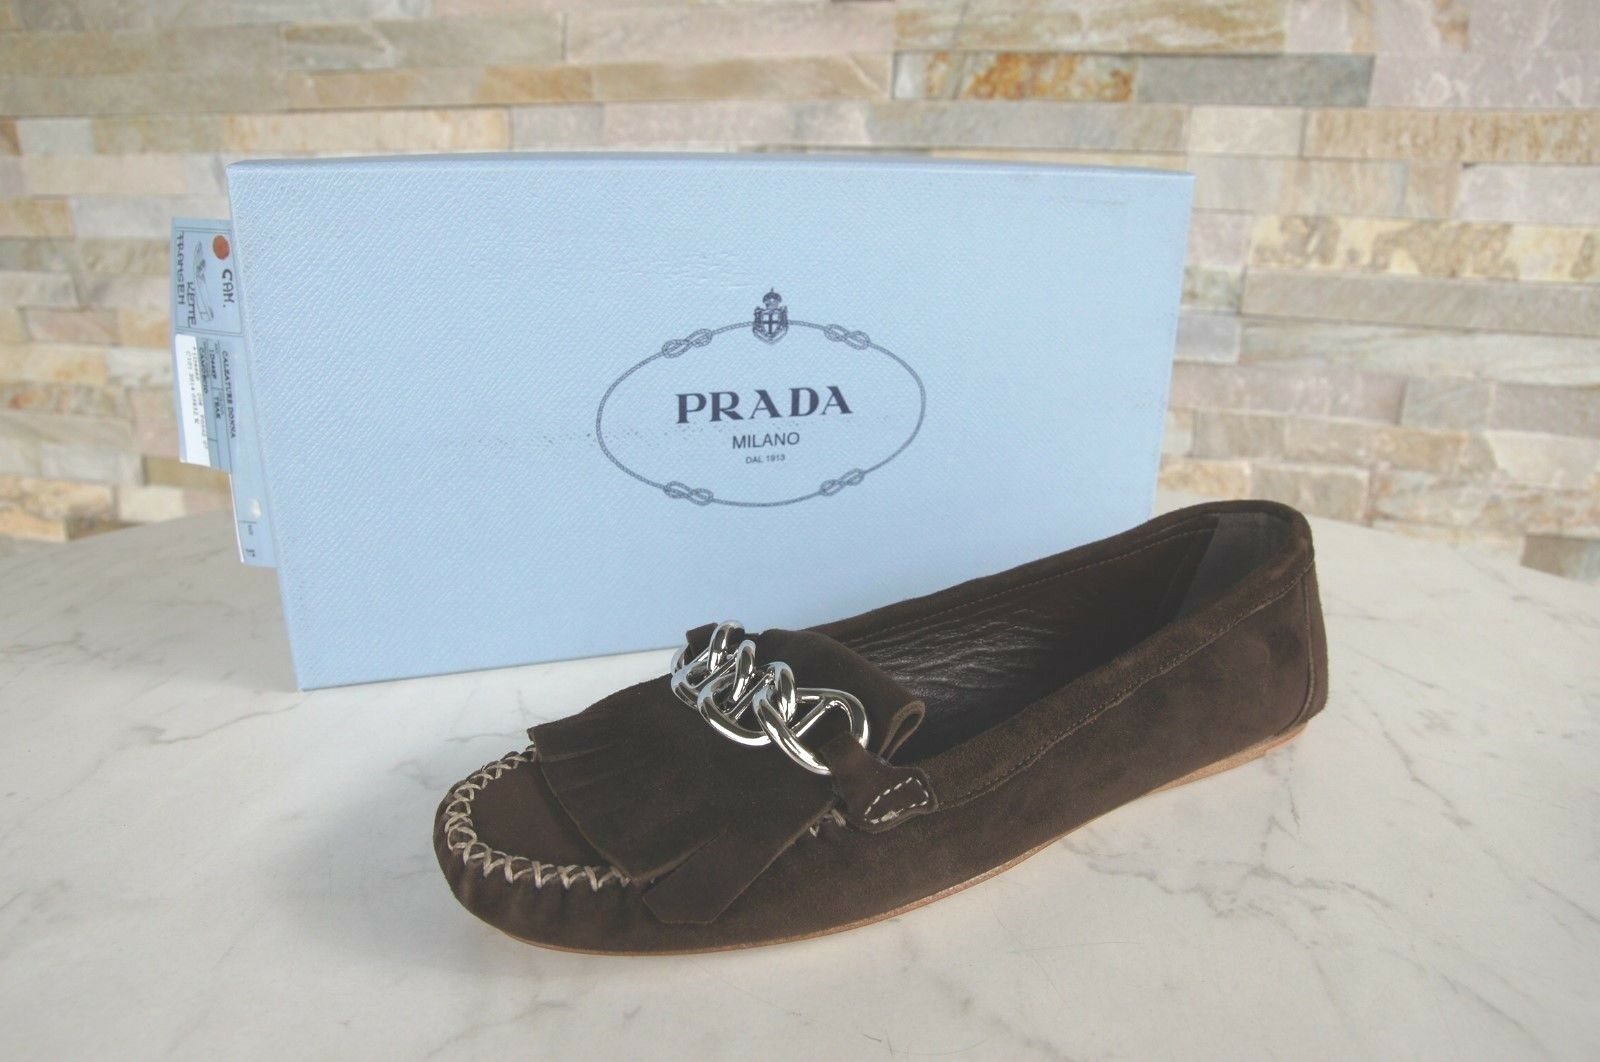 PRADA Talla 39 Loafers Slip On Moccasins zapatos Fringed marrón formerly   NEW